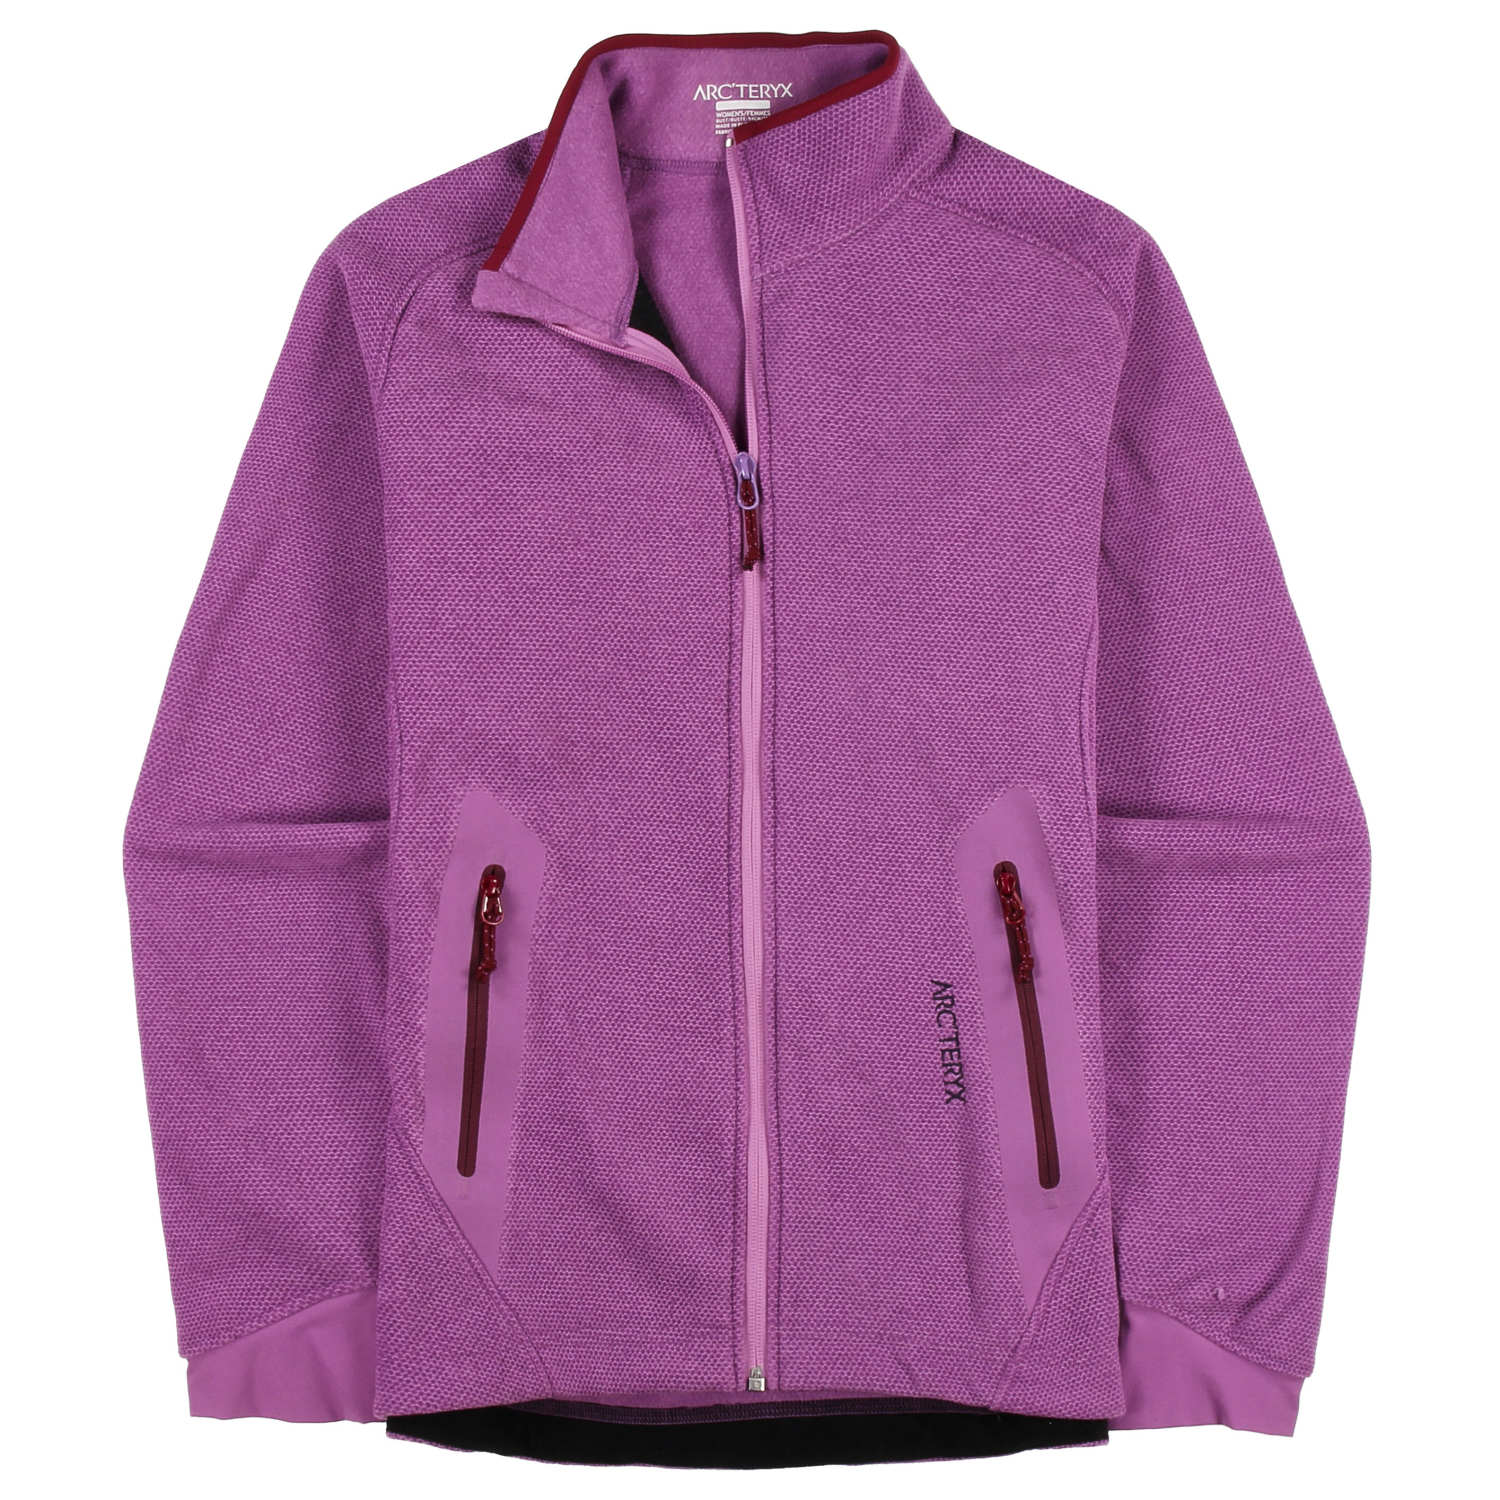 Main product image: Strato Jacket Women's